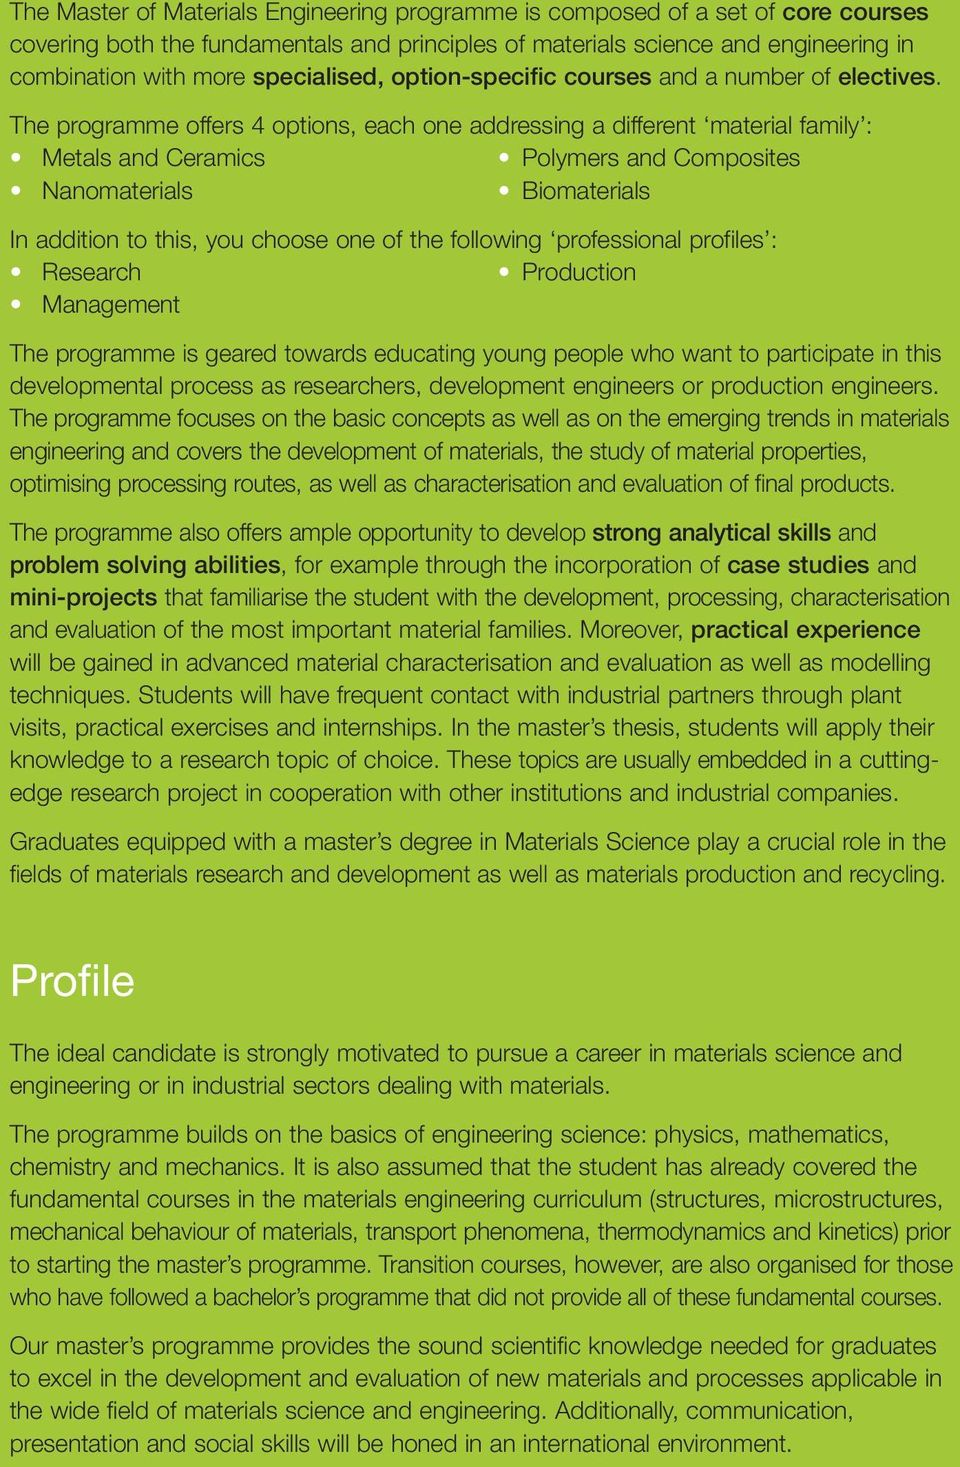 Master of Science in Materials Engineering - PDF